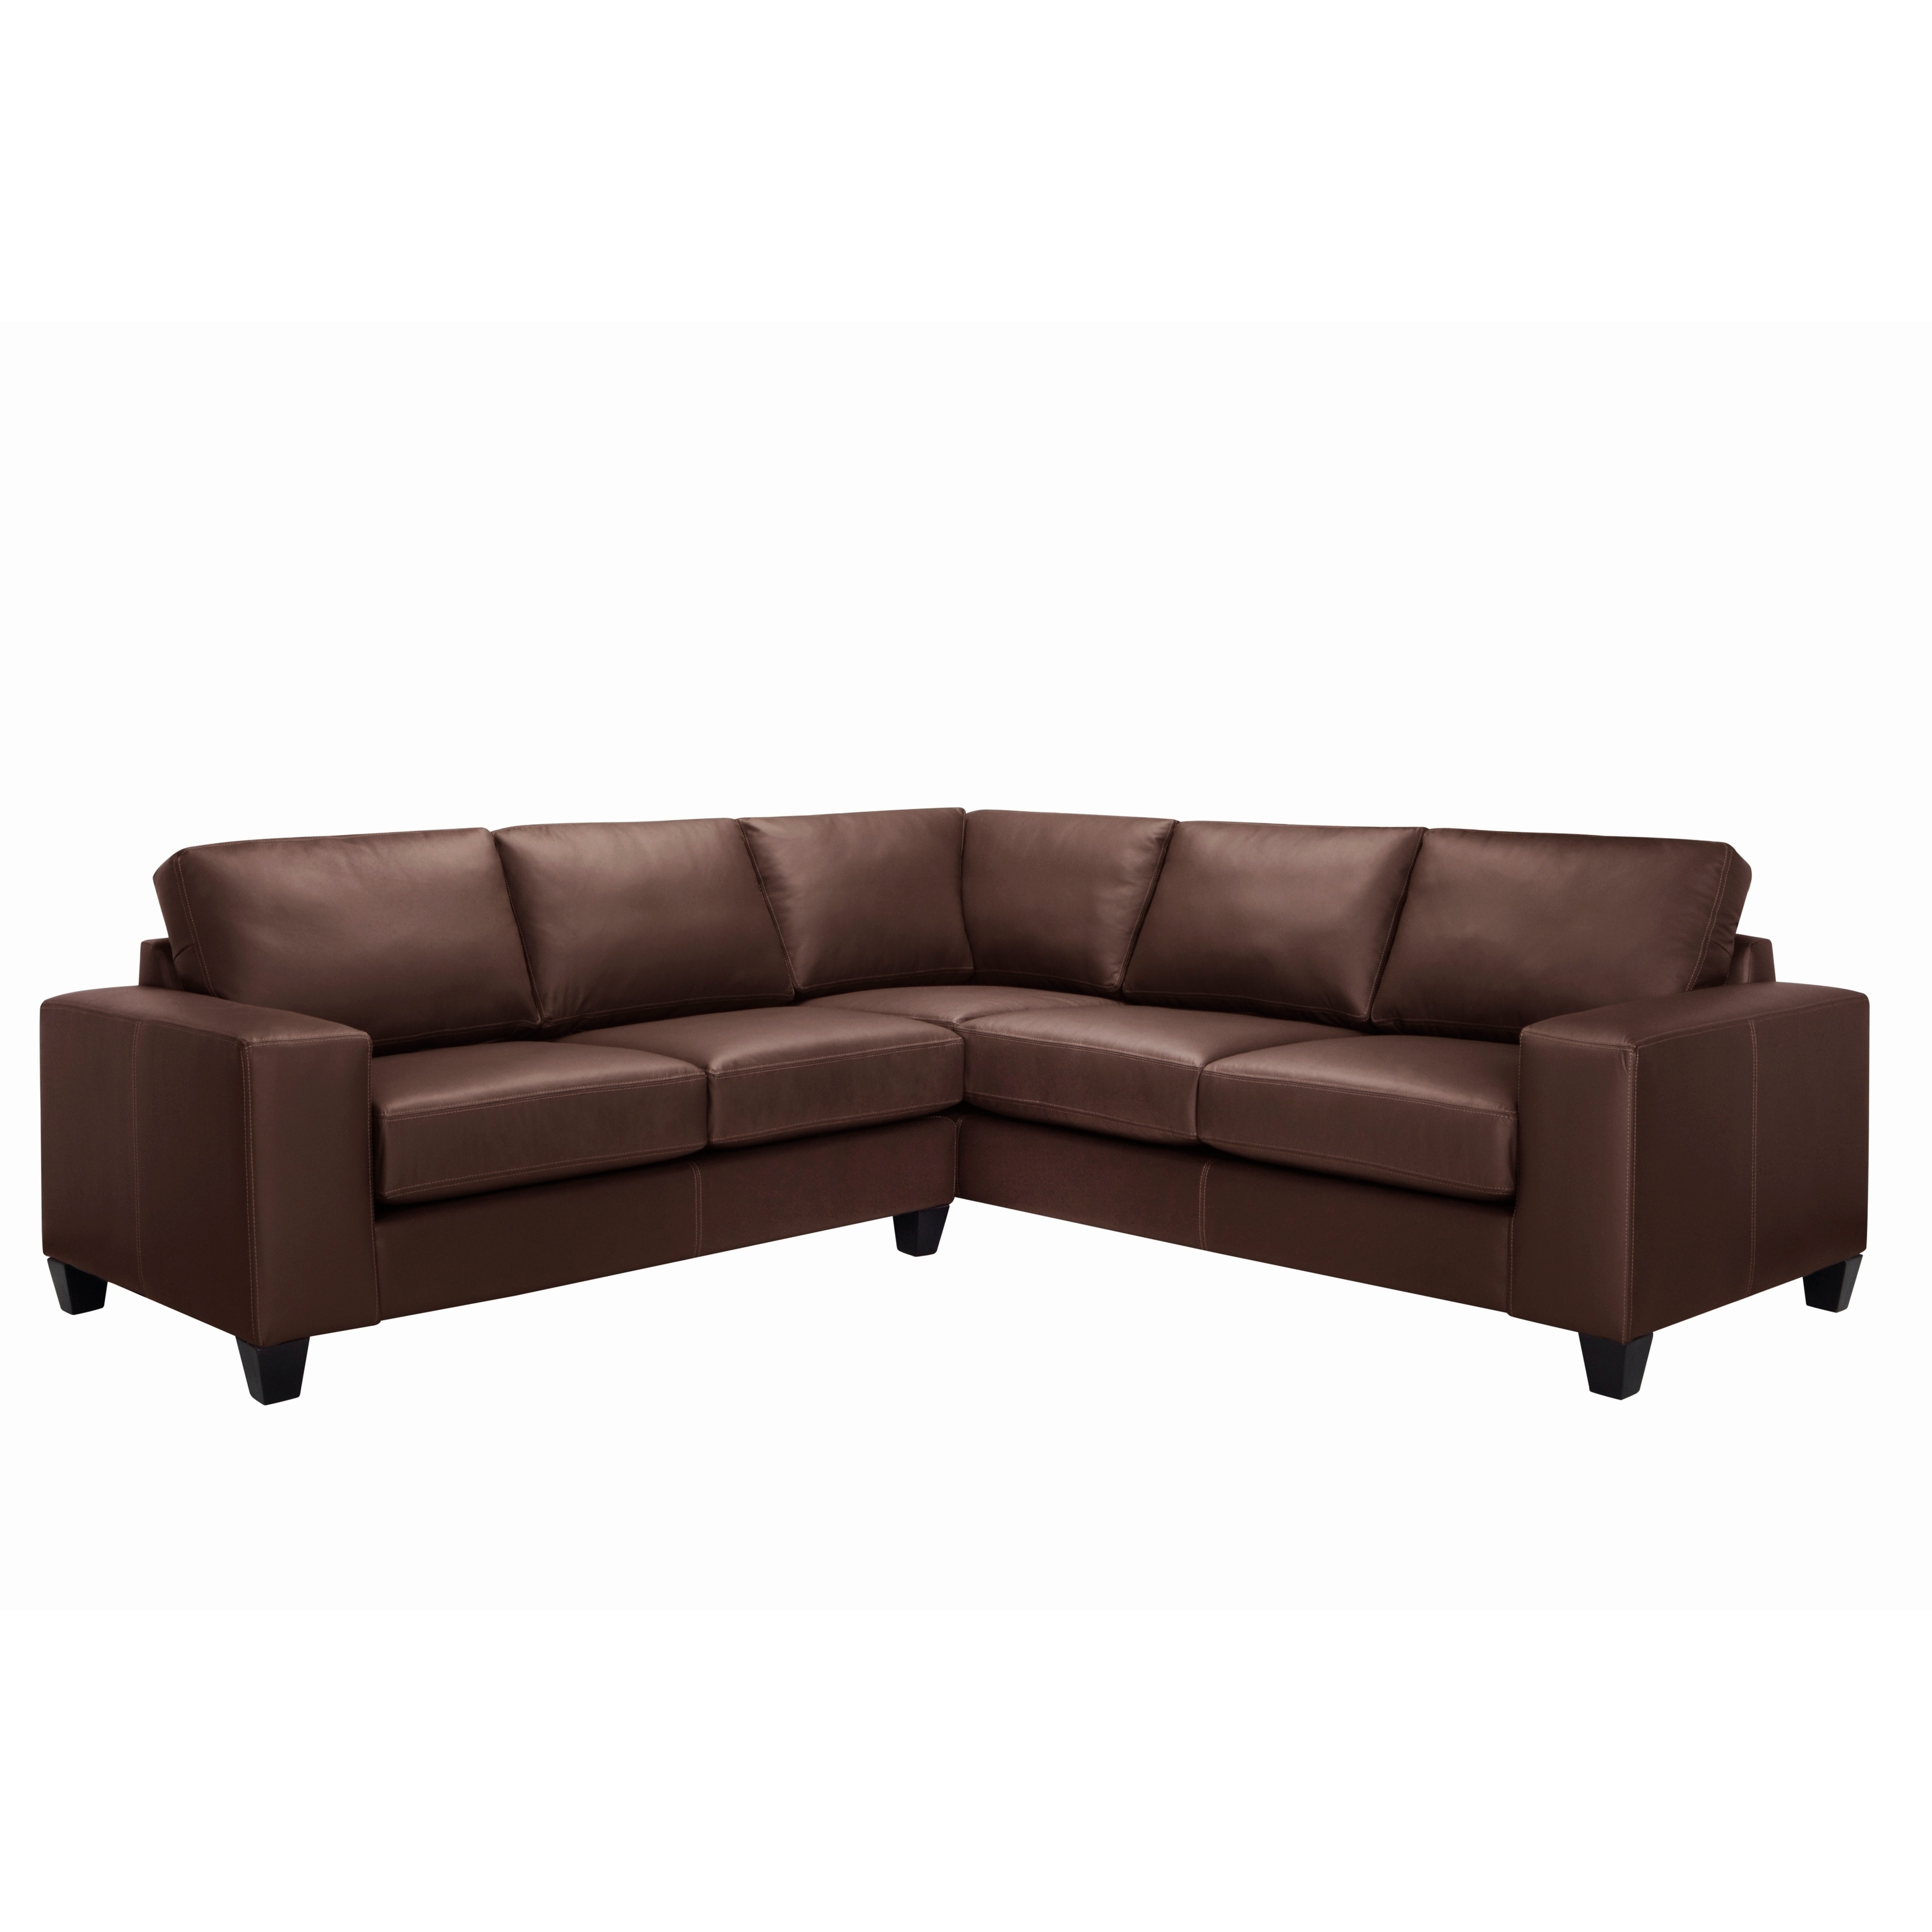 Shop paulina top grain italian leather sectional sofa on sale free shipping today overstock com 8089927